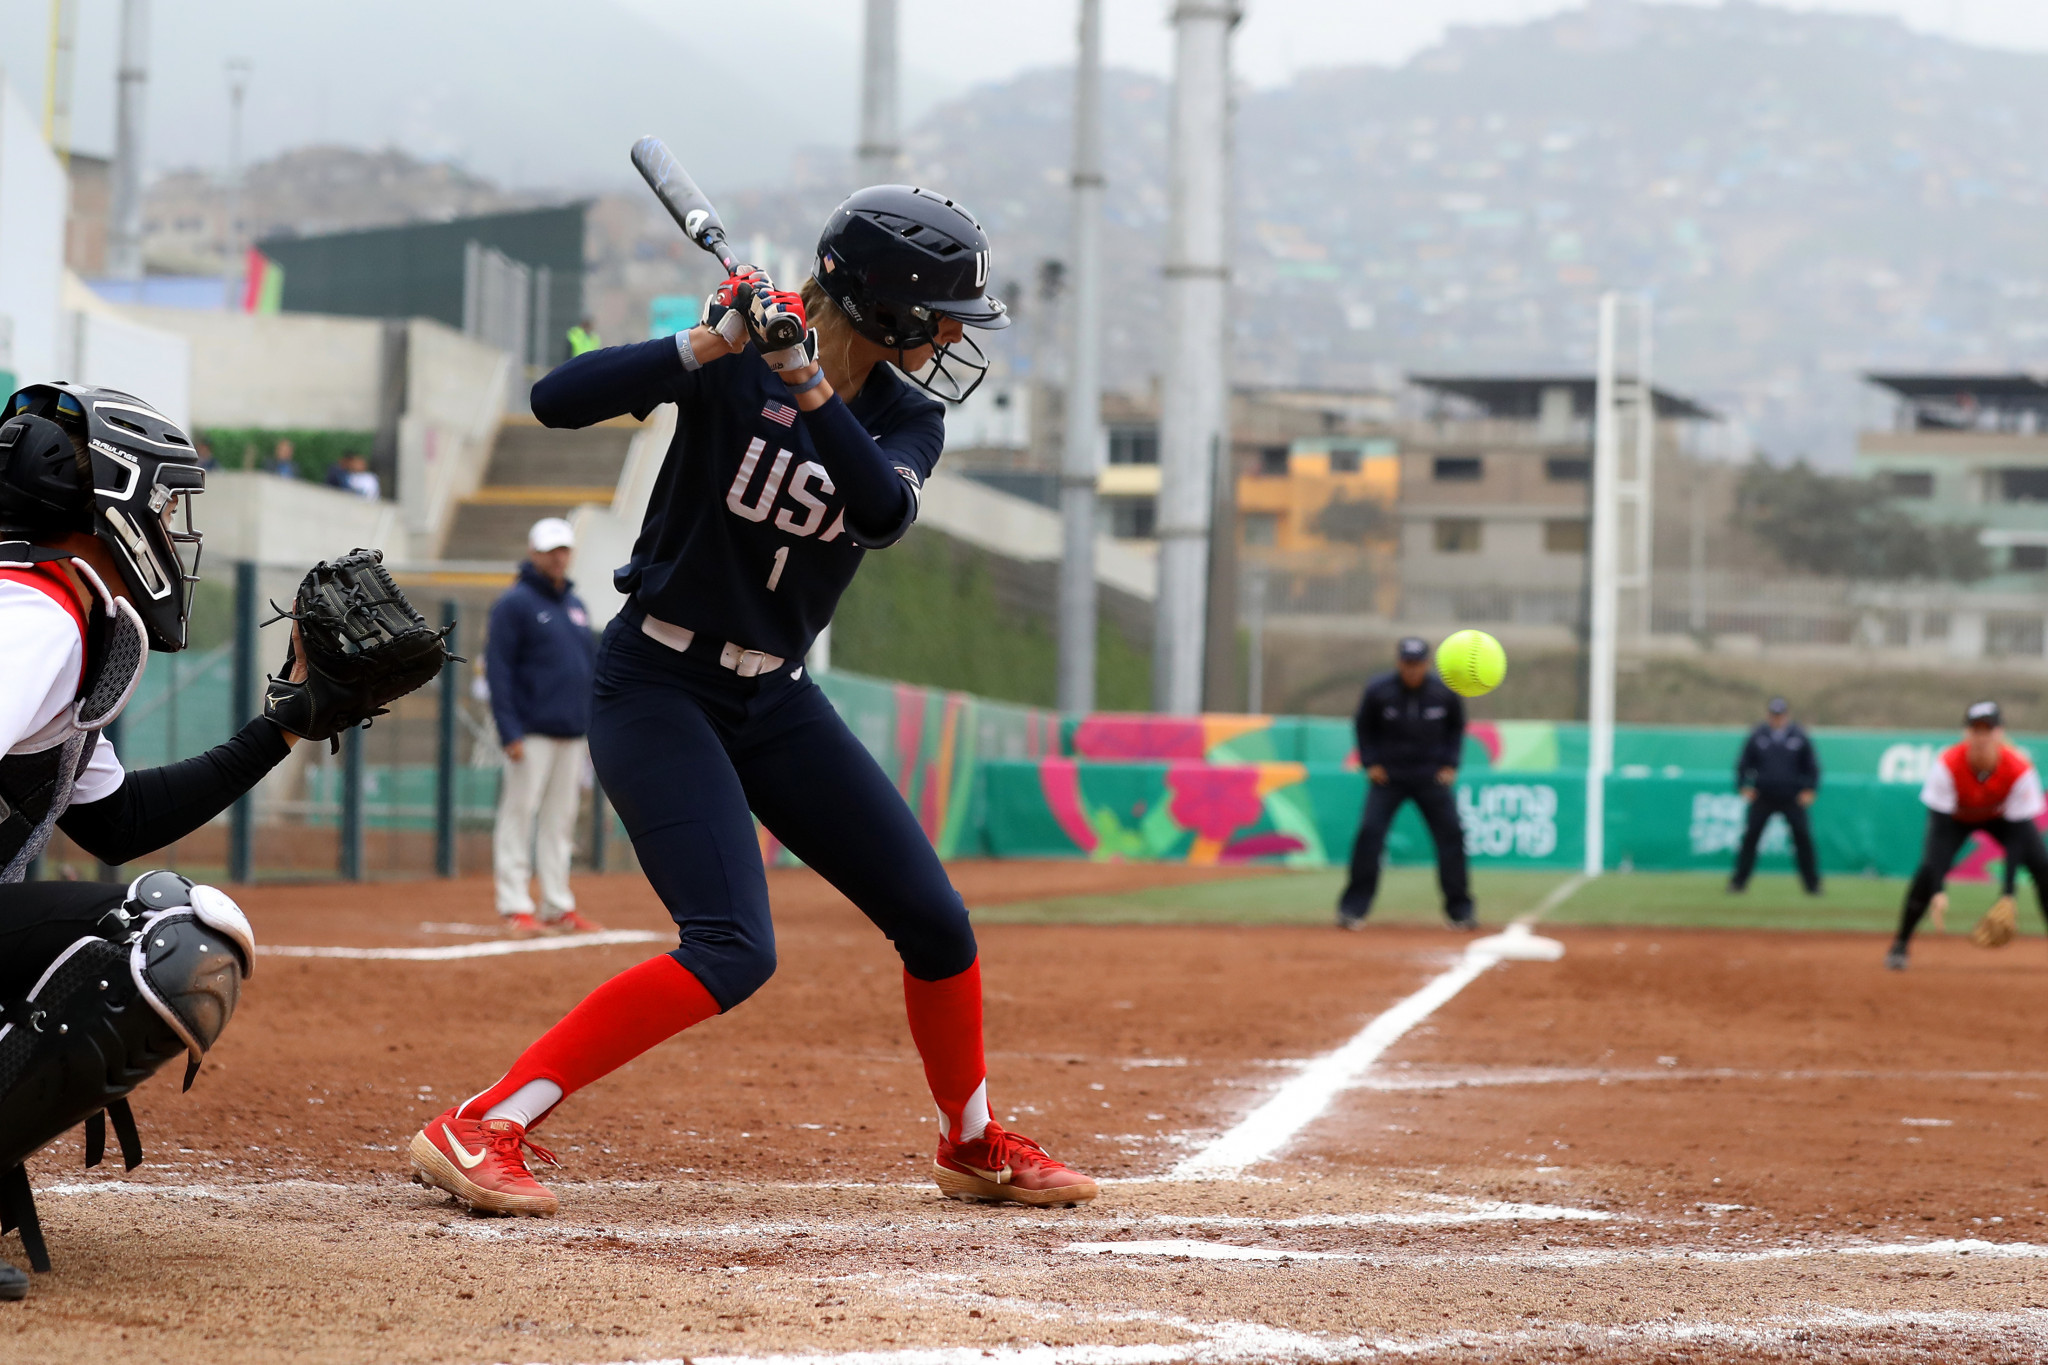 Women's softball has been added to the Junior Pan American Games programme ©Getty Images